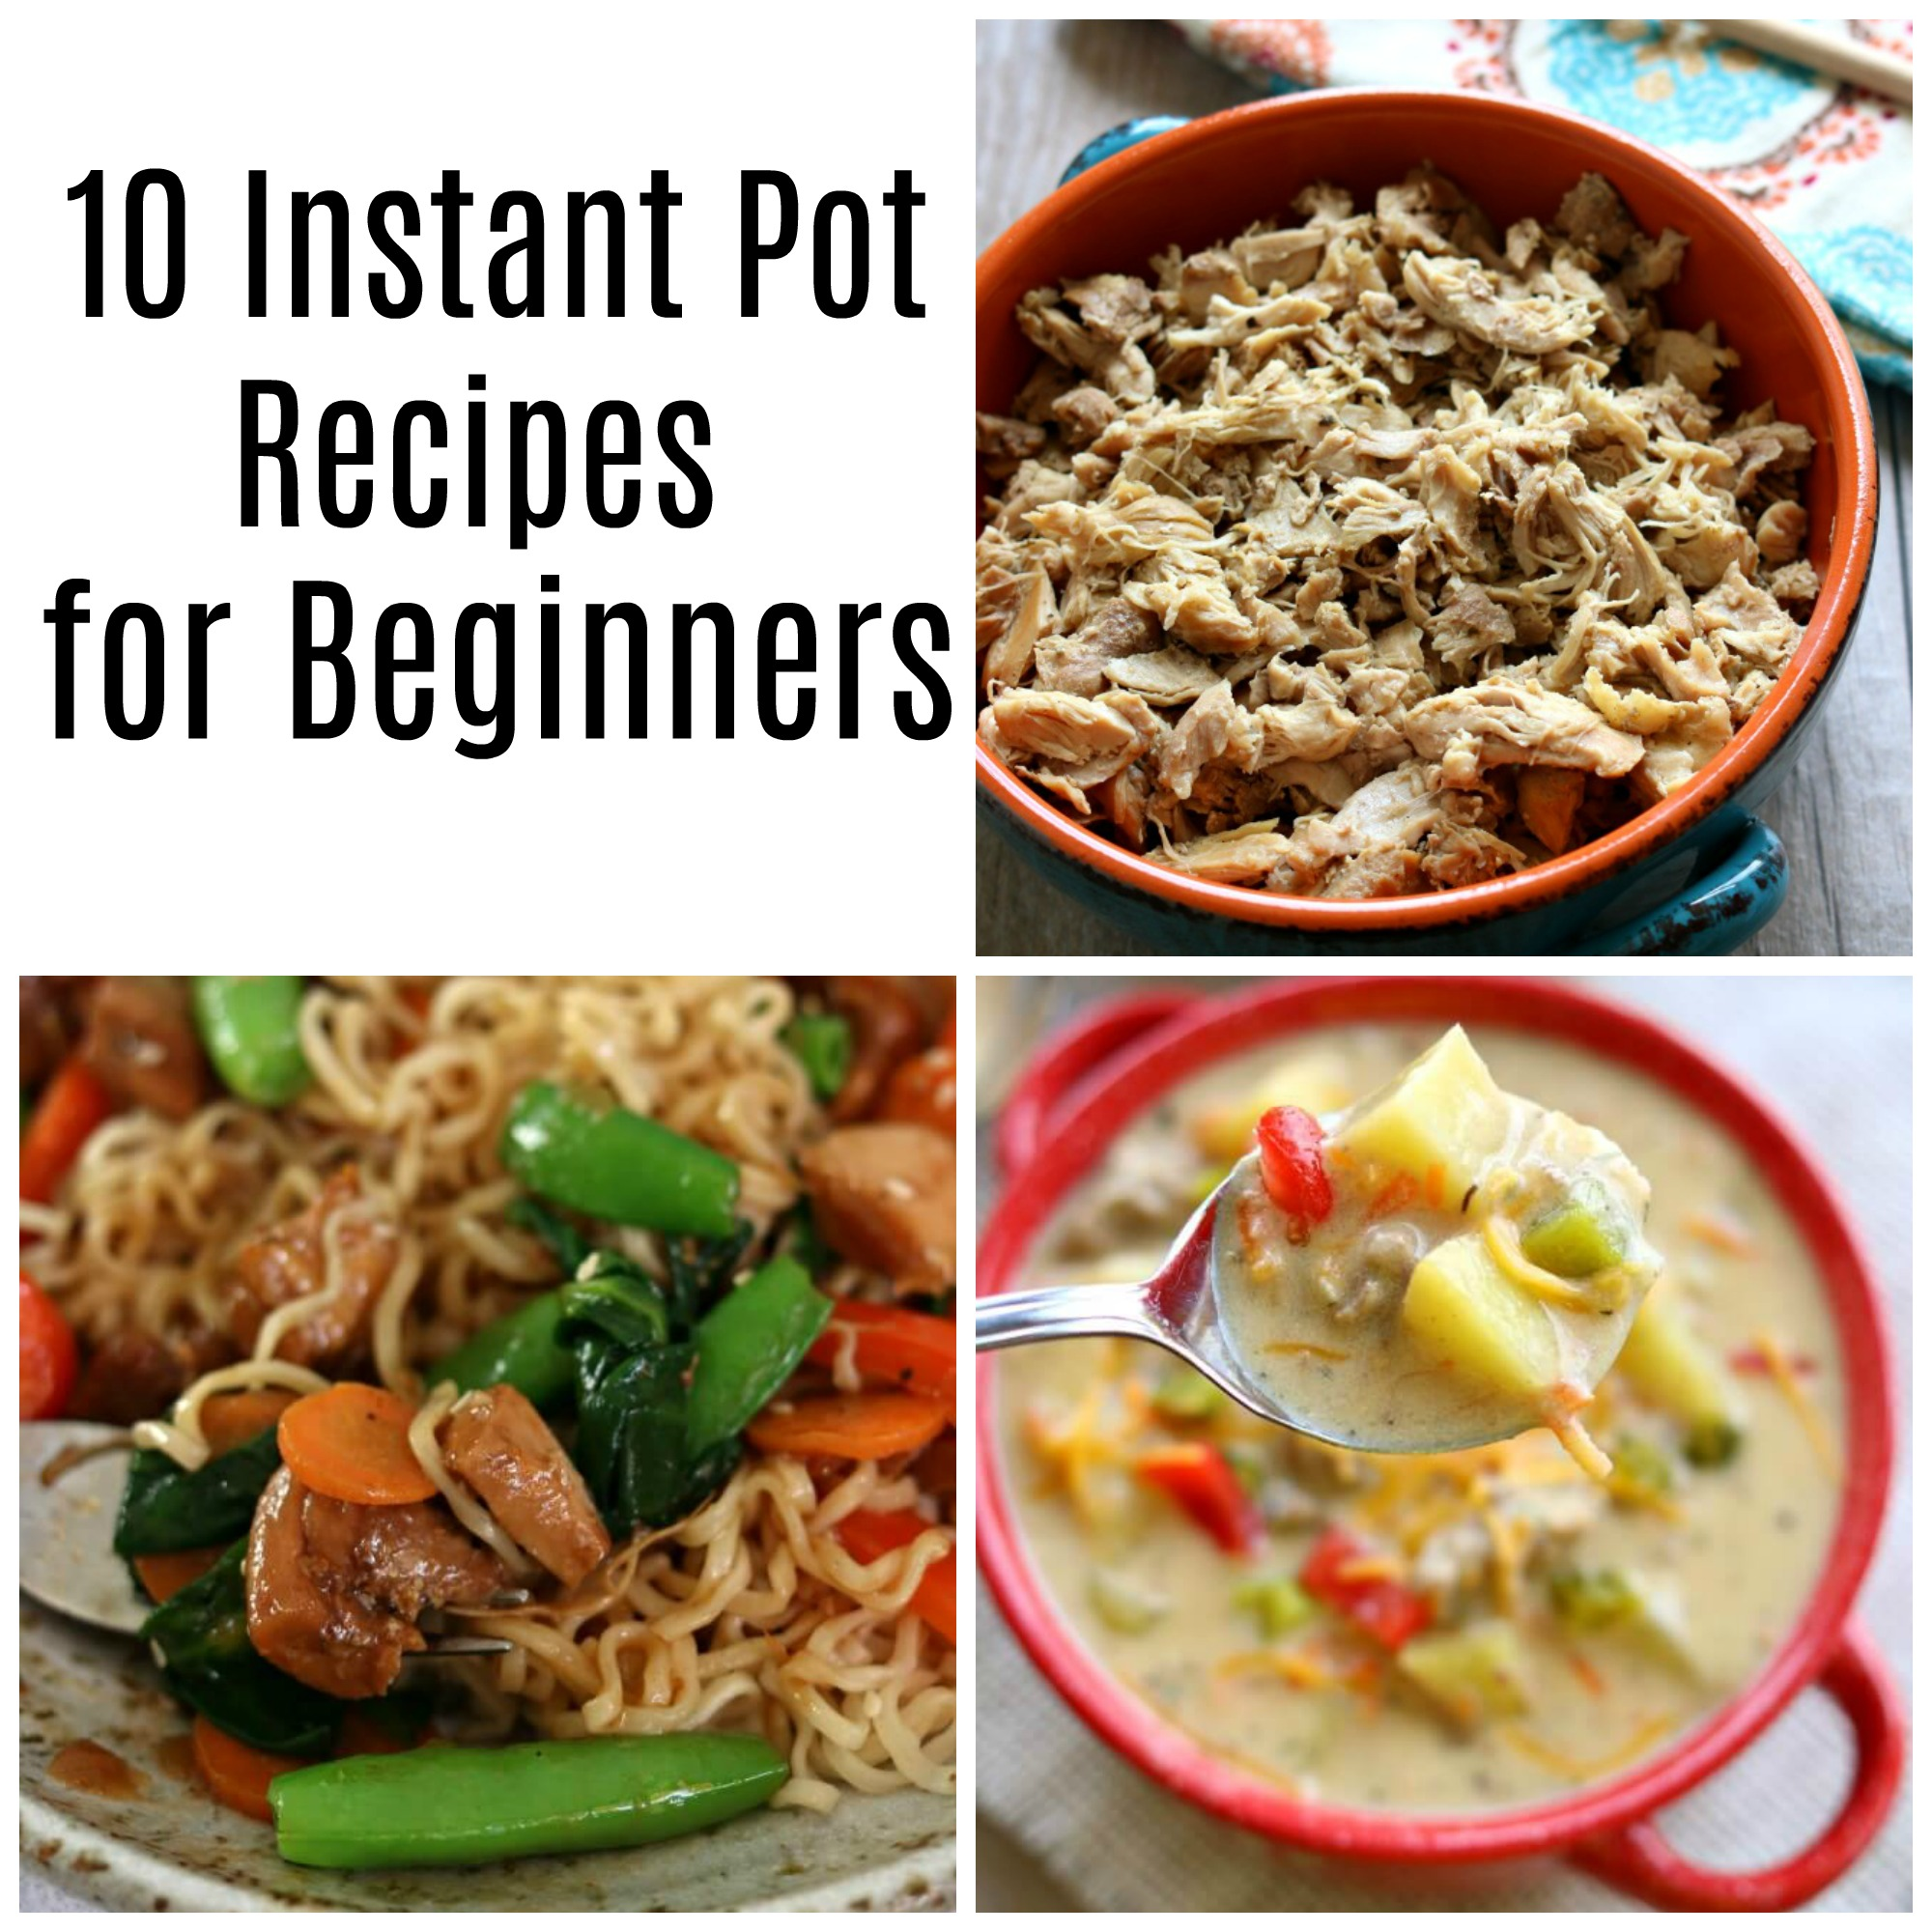 10 Instant Pot Recipes For Beginners